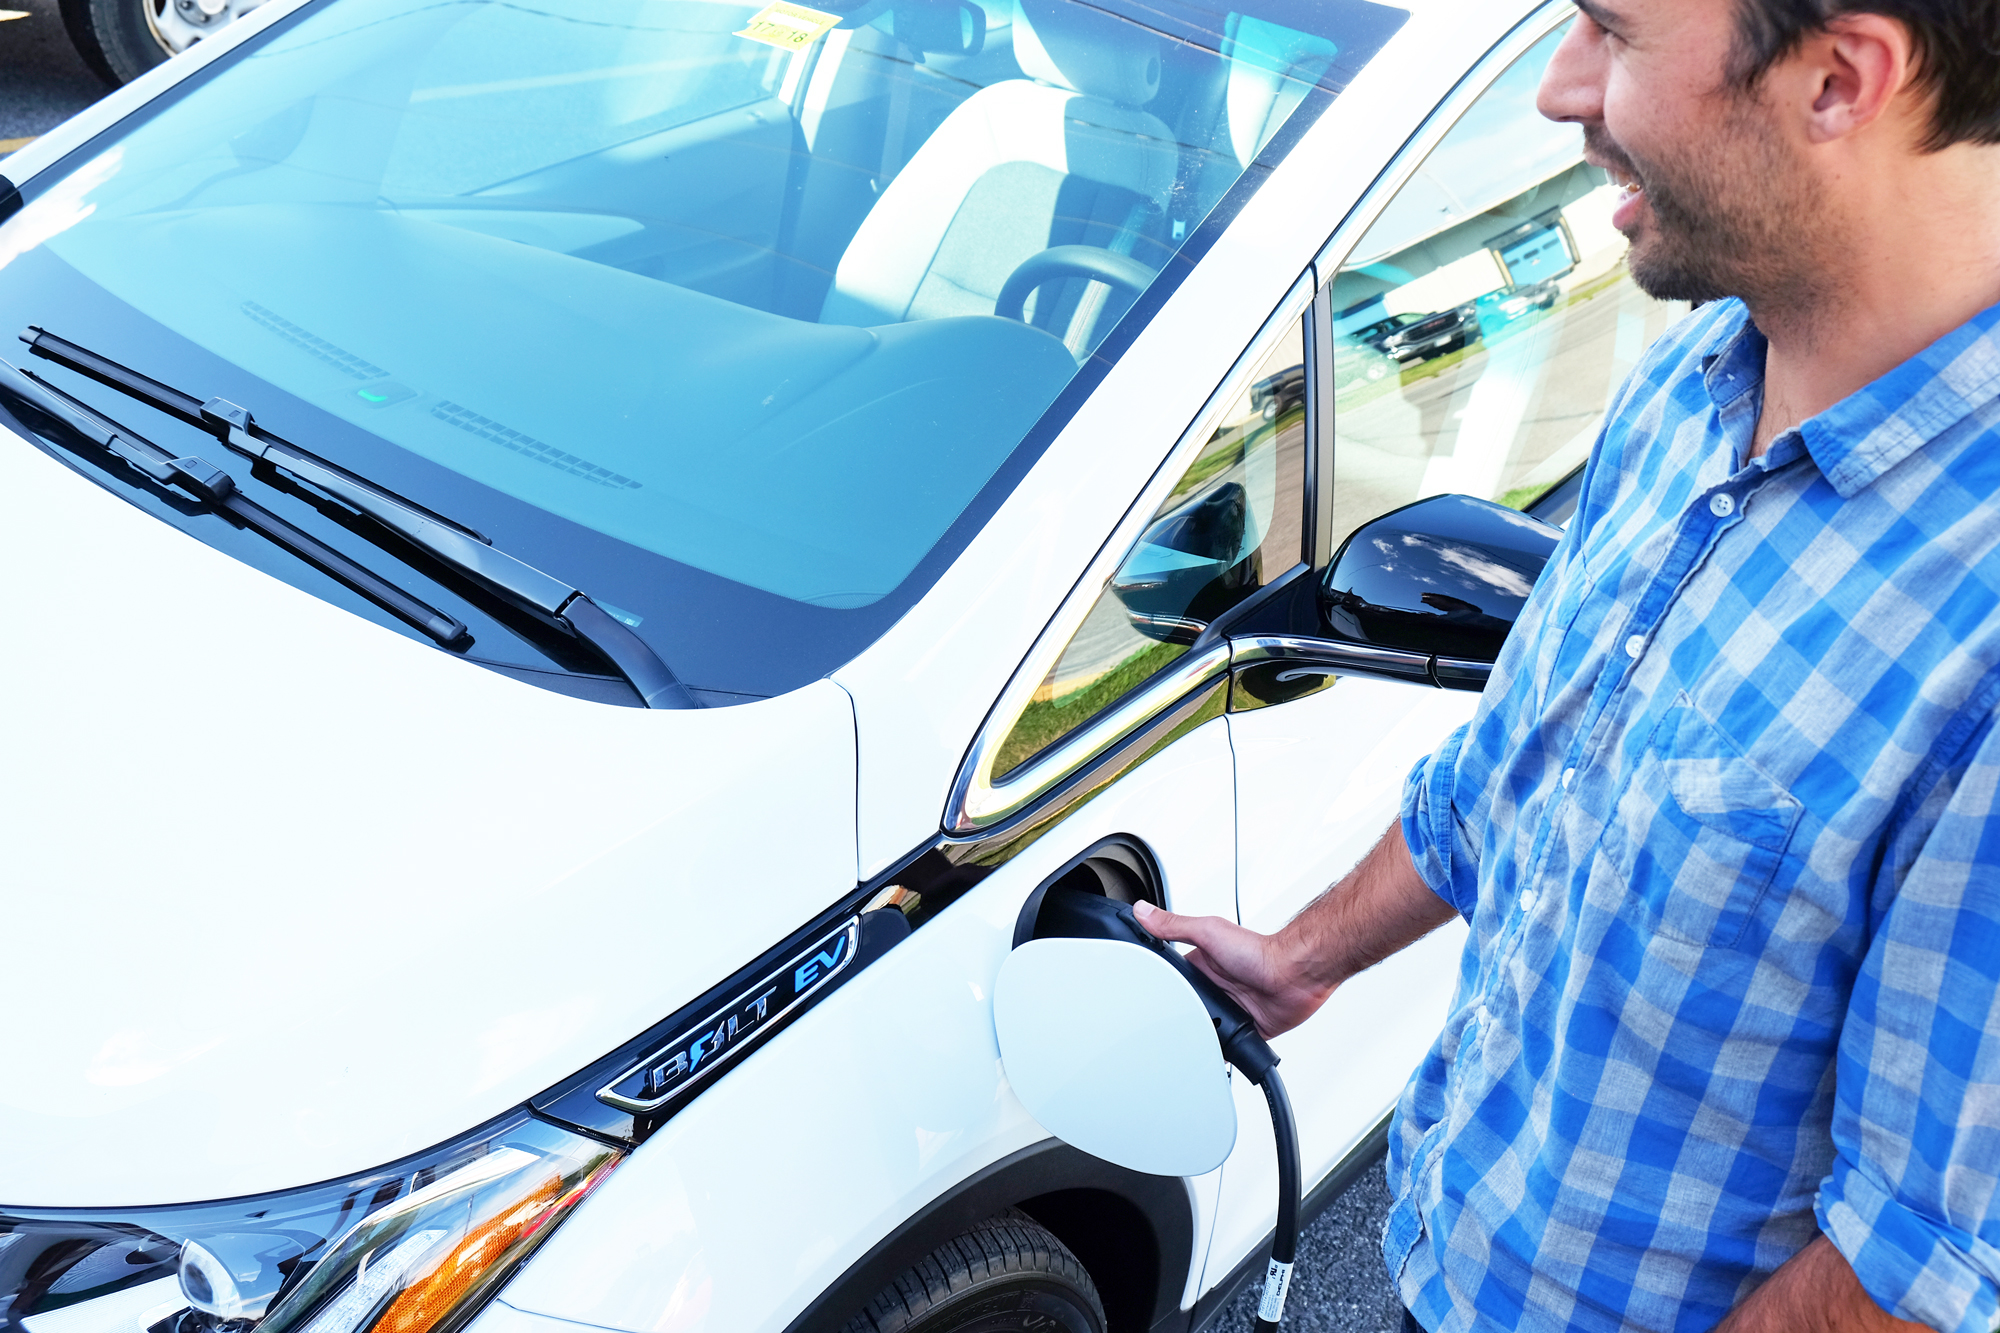 National Grid S Machusetts Electric Transportation Program Will Fund 100 Of The Service To New Charging Stations And Provide A Rebate For